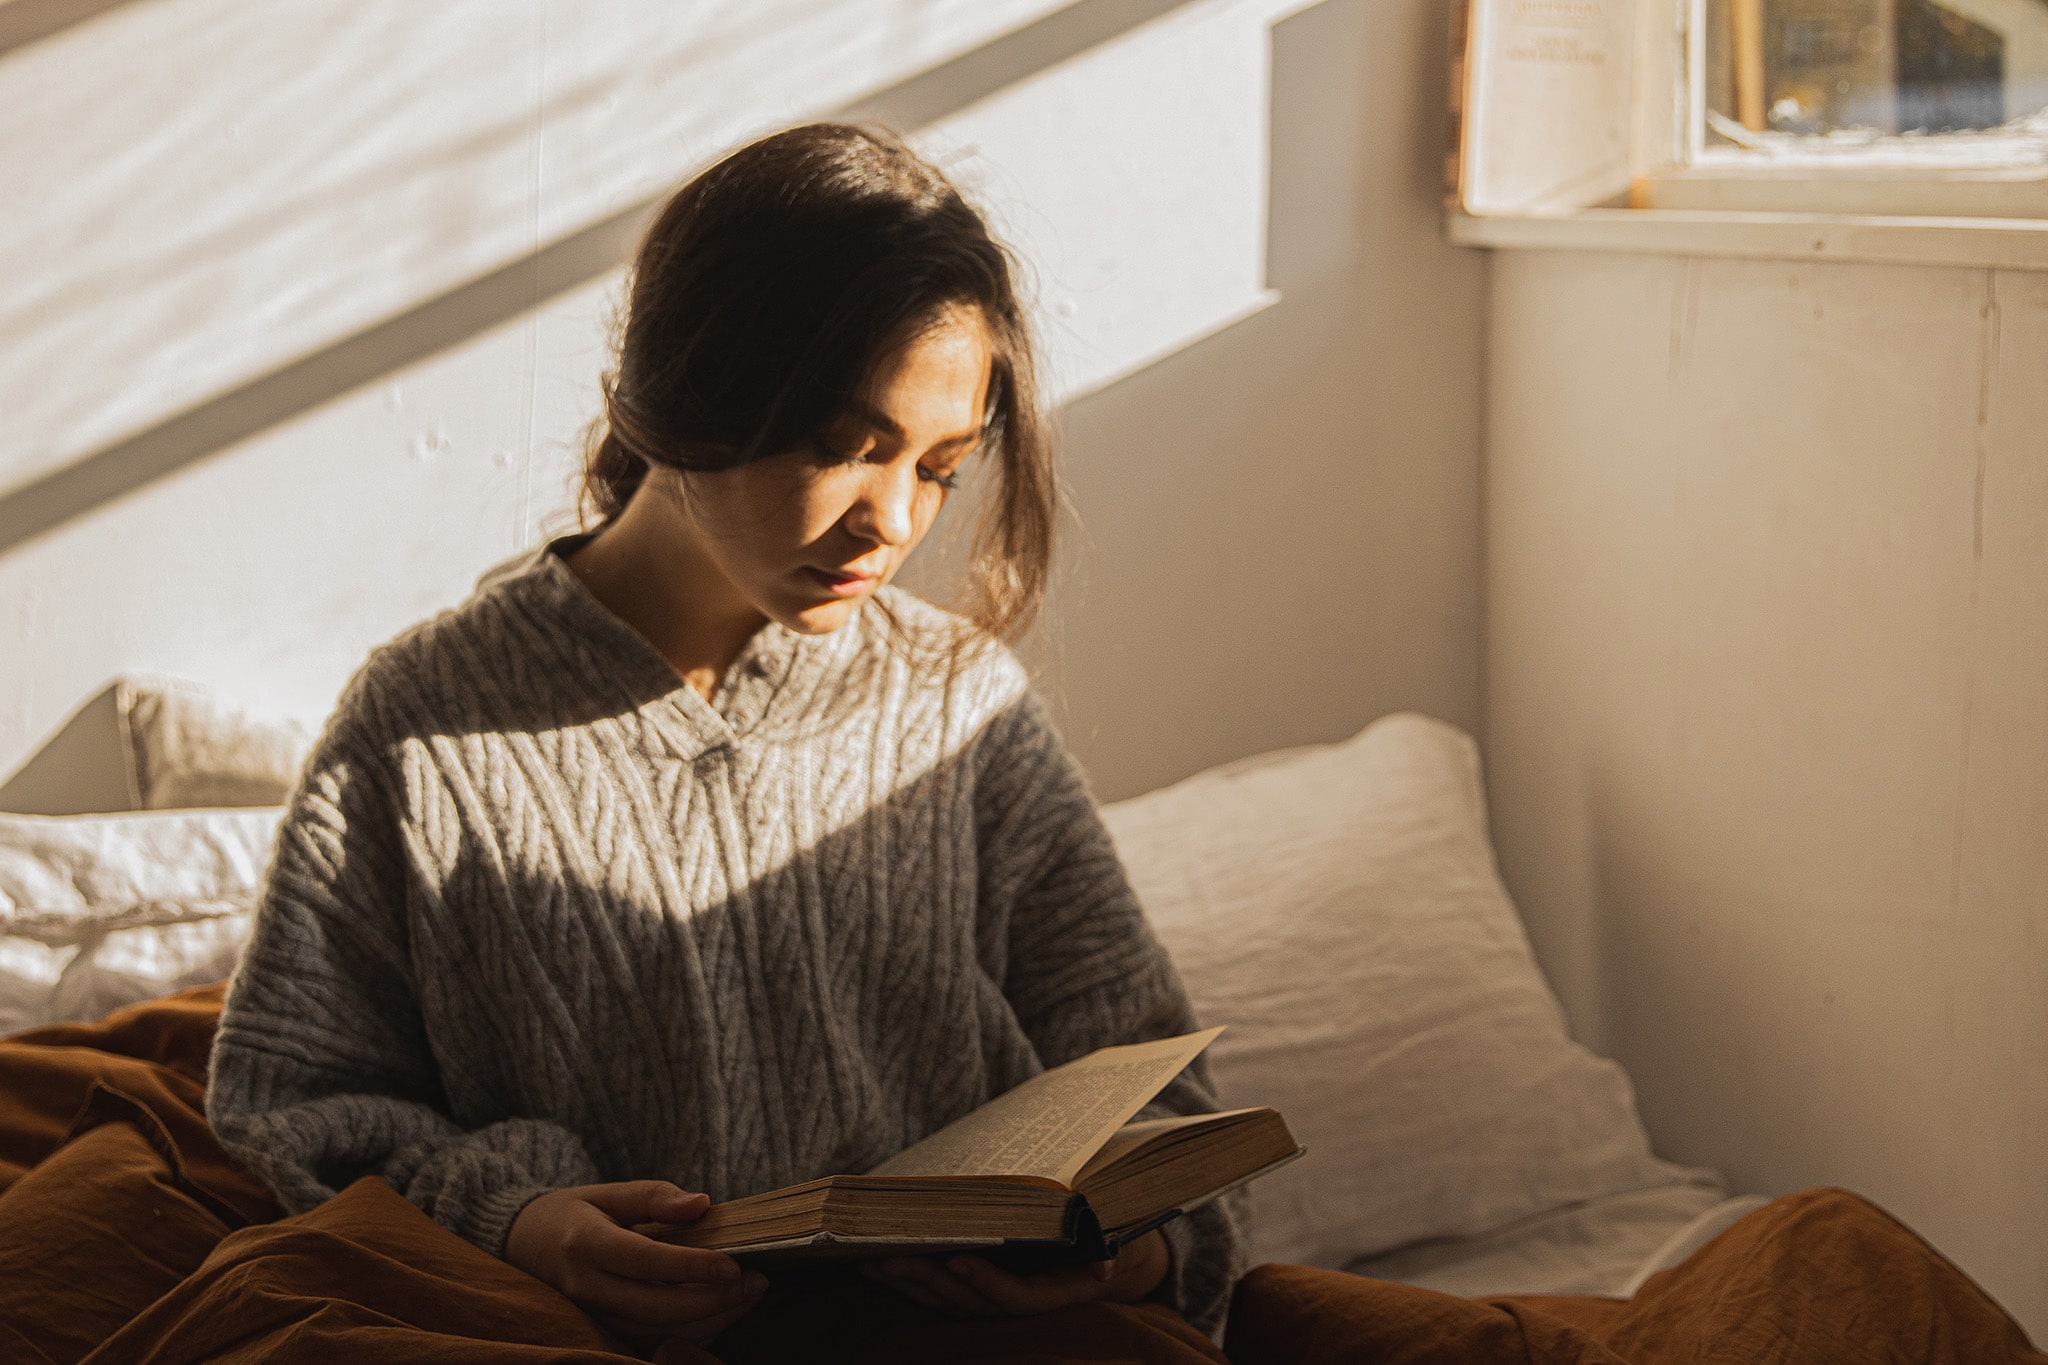 Woman reads a book in bed about feminist standpoint theory and intersectionality underneath the afternoon sunlight.